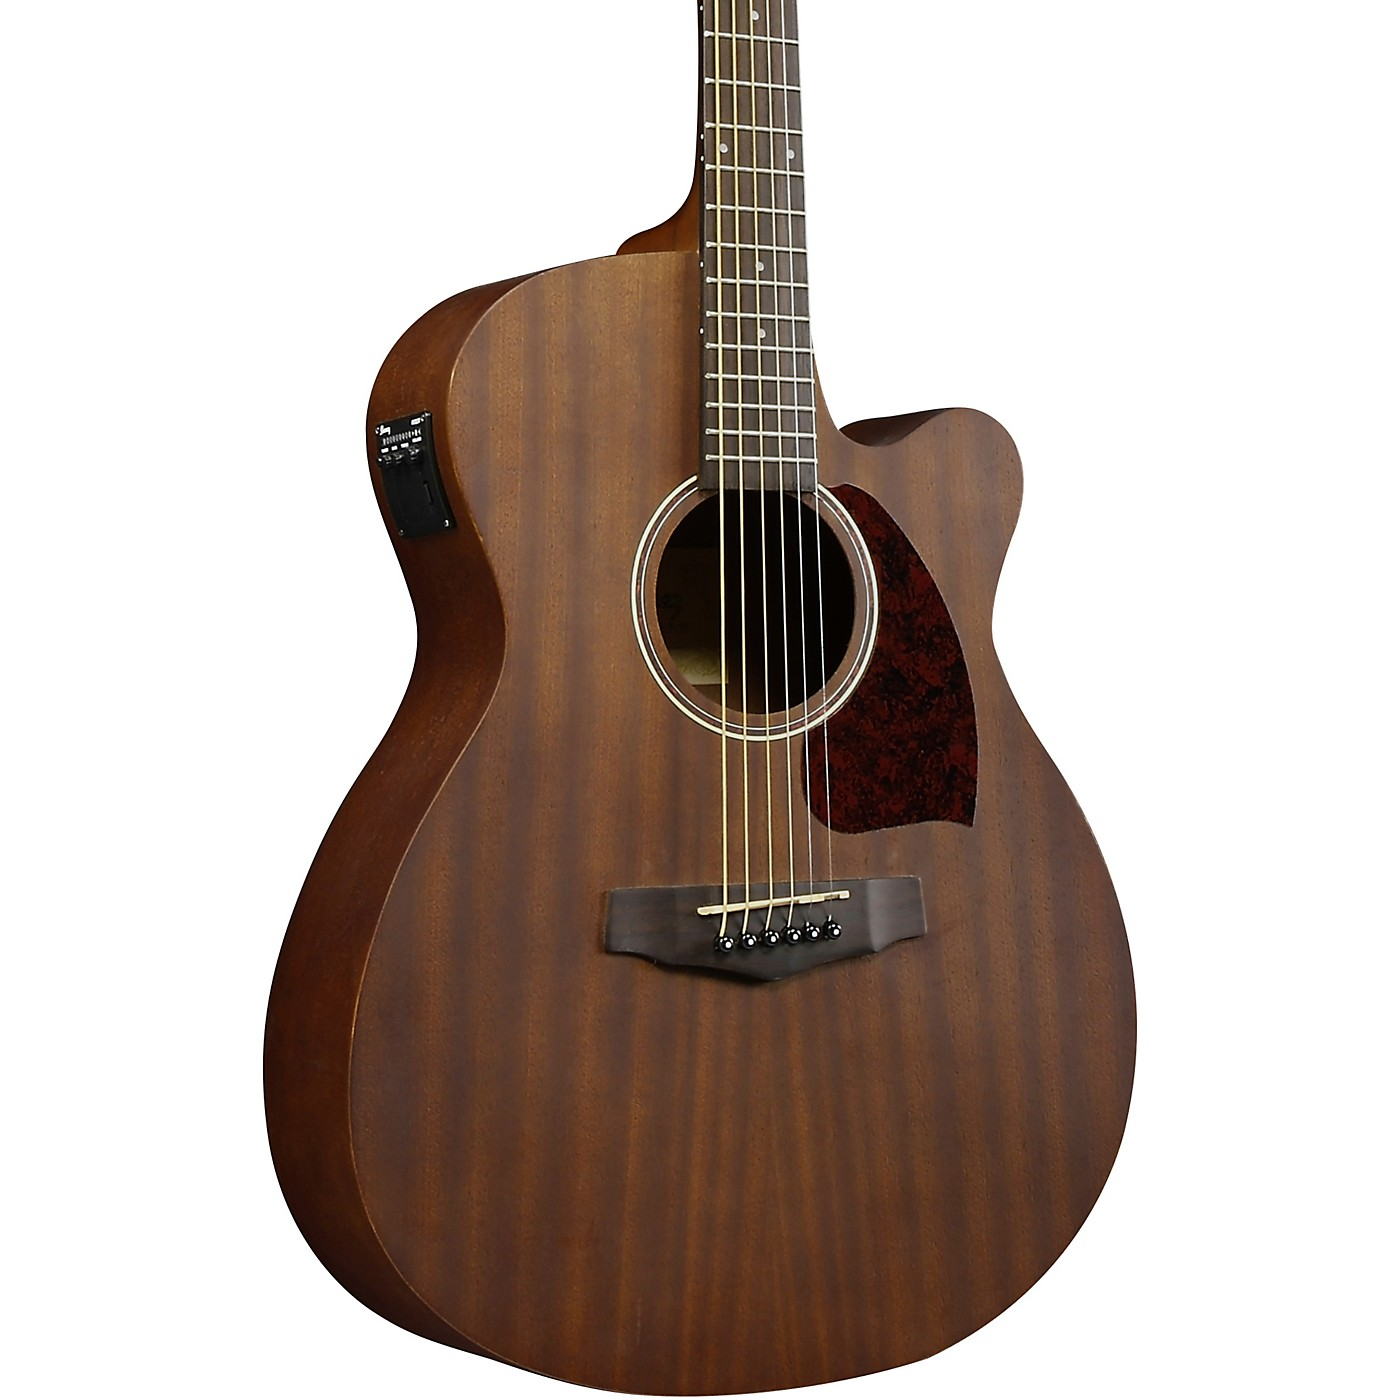 Ibanez Performance Series PC12MHCEOPN Grand Concert Acoustic-Electric Guitar thumbnail